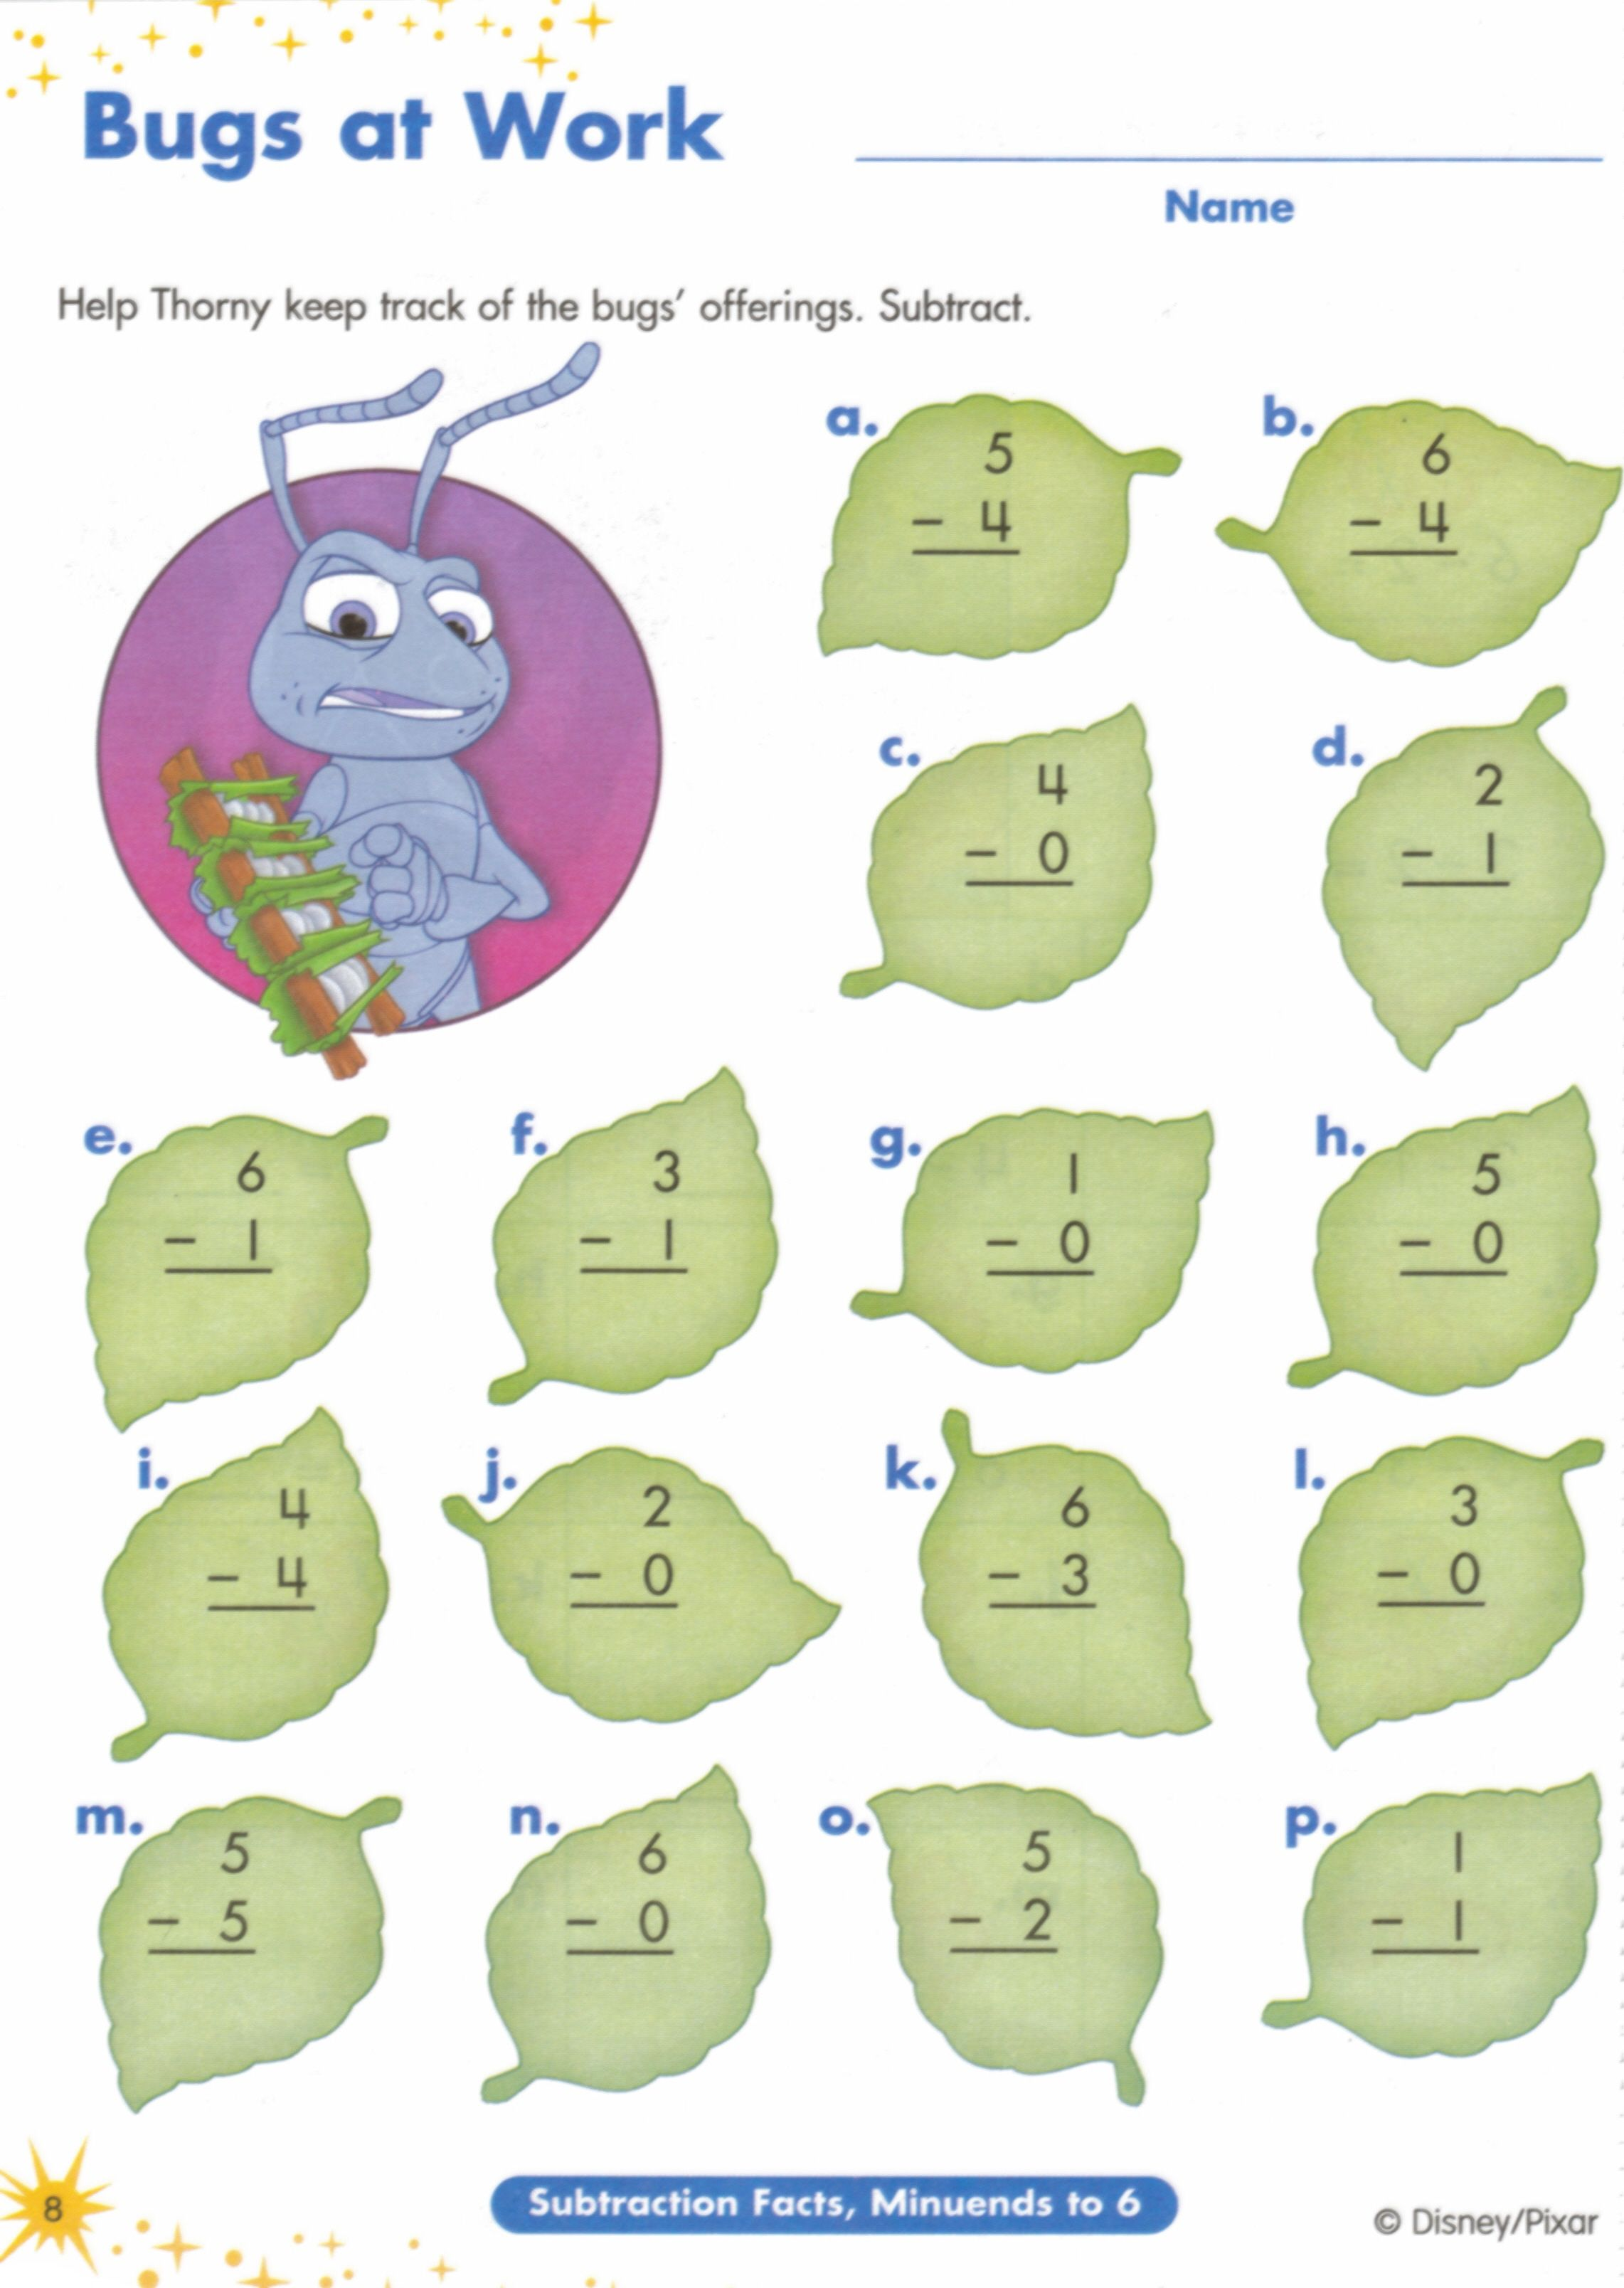 Proatmealus  Remarkable  Images About Worksheets On Pinterest  Fun Facts For Kids  With Exquisite  Images About Worksheets On Pinterest  Fun Facts For Kids Earth Day Worksheets And Jungles With Agreeable Perimeter Worksheets Th Grade Also Compounds And Mixtures Worksheet In Addition Grade  Worksheets And Regrouping Subtraction Worksheet As Well As Greek Root Words Worksheets Additionally Ia Punnett Square Worksheethuman Characteristics Answers From Pinterestcom With Proatmealus  Exquisite  Images About Worksheets On Pinterest  Fun Facts For Kids  With Agreeable  Images About Worksheets On Pinterest  Fun Facts For Kids Earth Day Worksheets And Jungles And Remarkable Perimeter Worksheets Th Grade Also Compounds And Mixtures Worksheet In Addition Grade  Worksheets From Pinterestcom